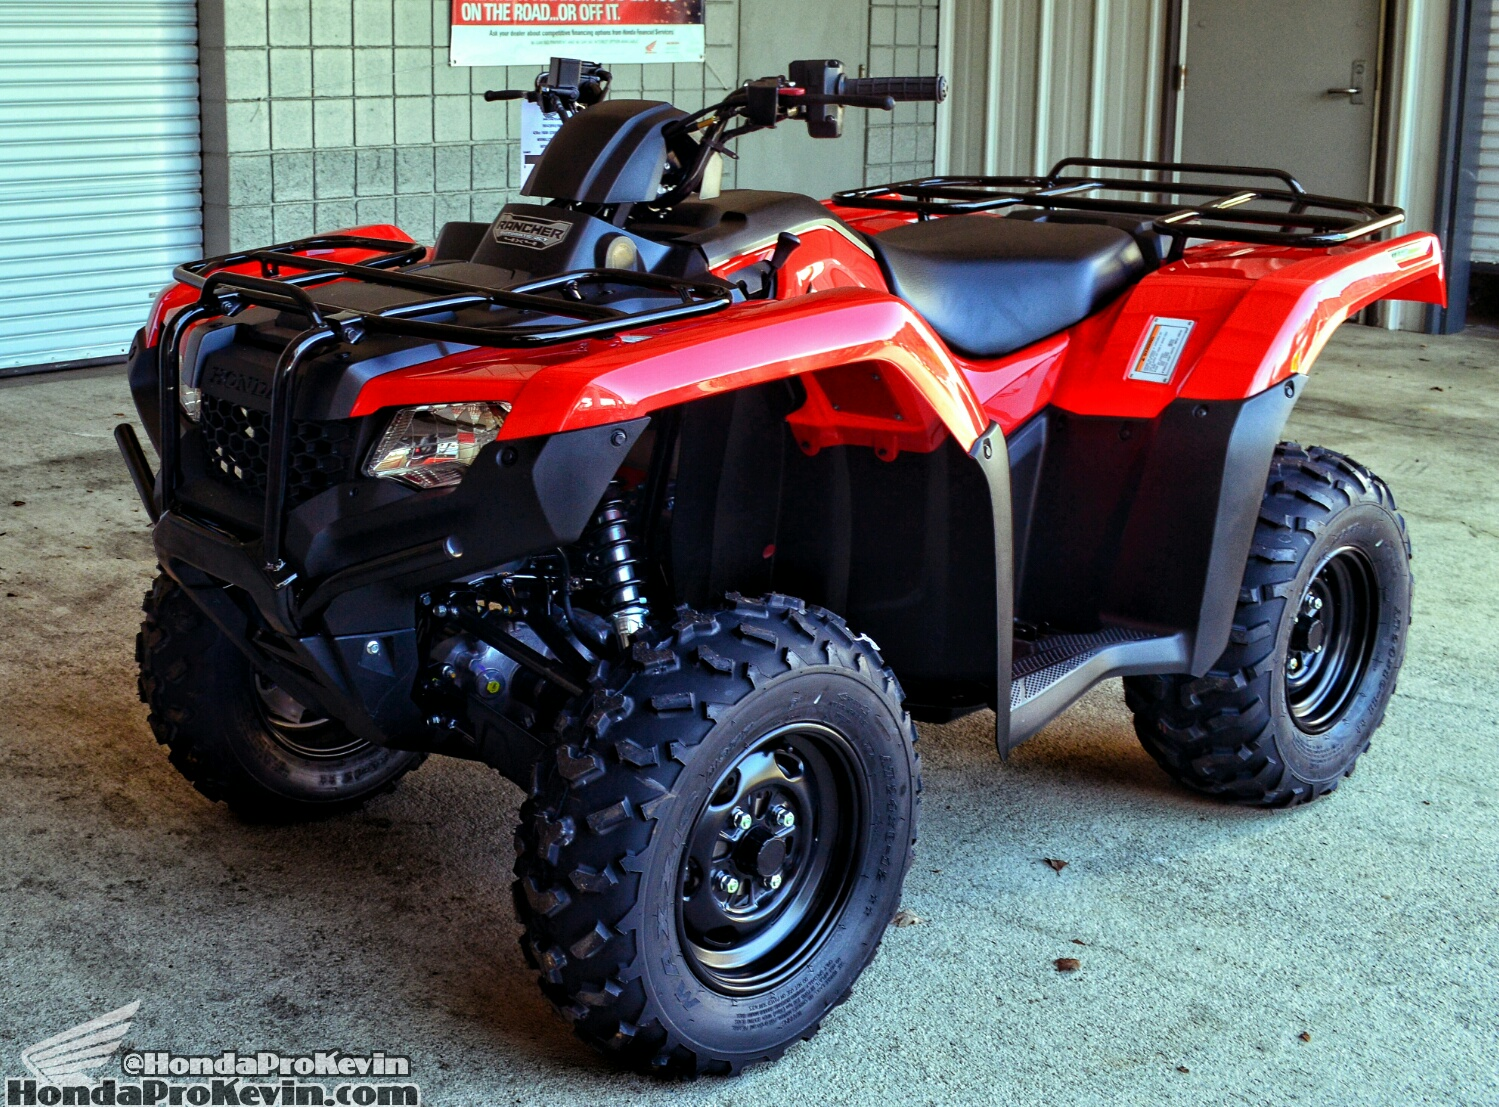 2019 Honda Rancher 420 ATV Ride Review / Specs - 4x4 Four Wheeler TRX420